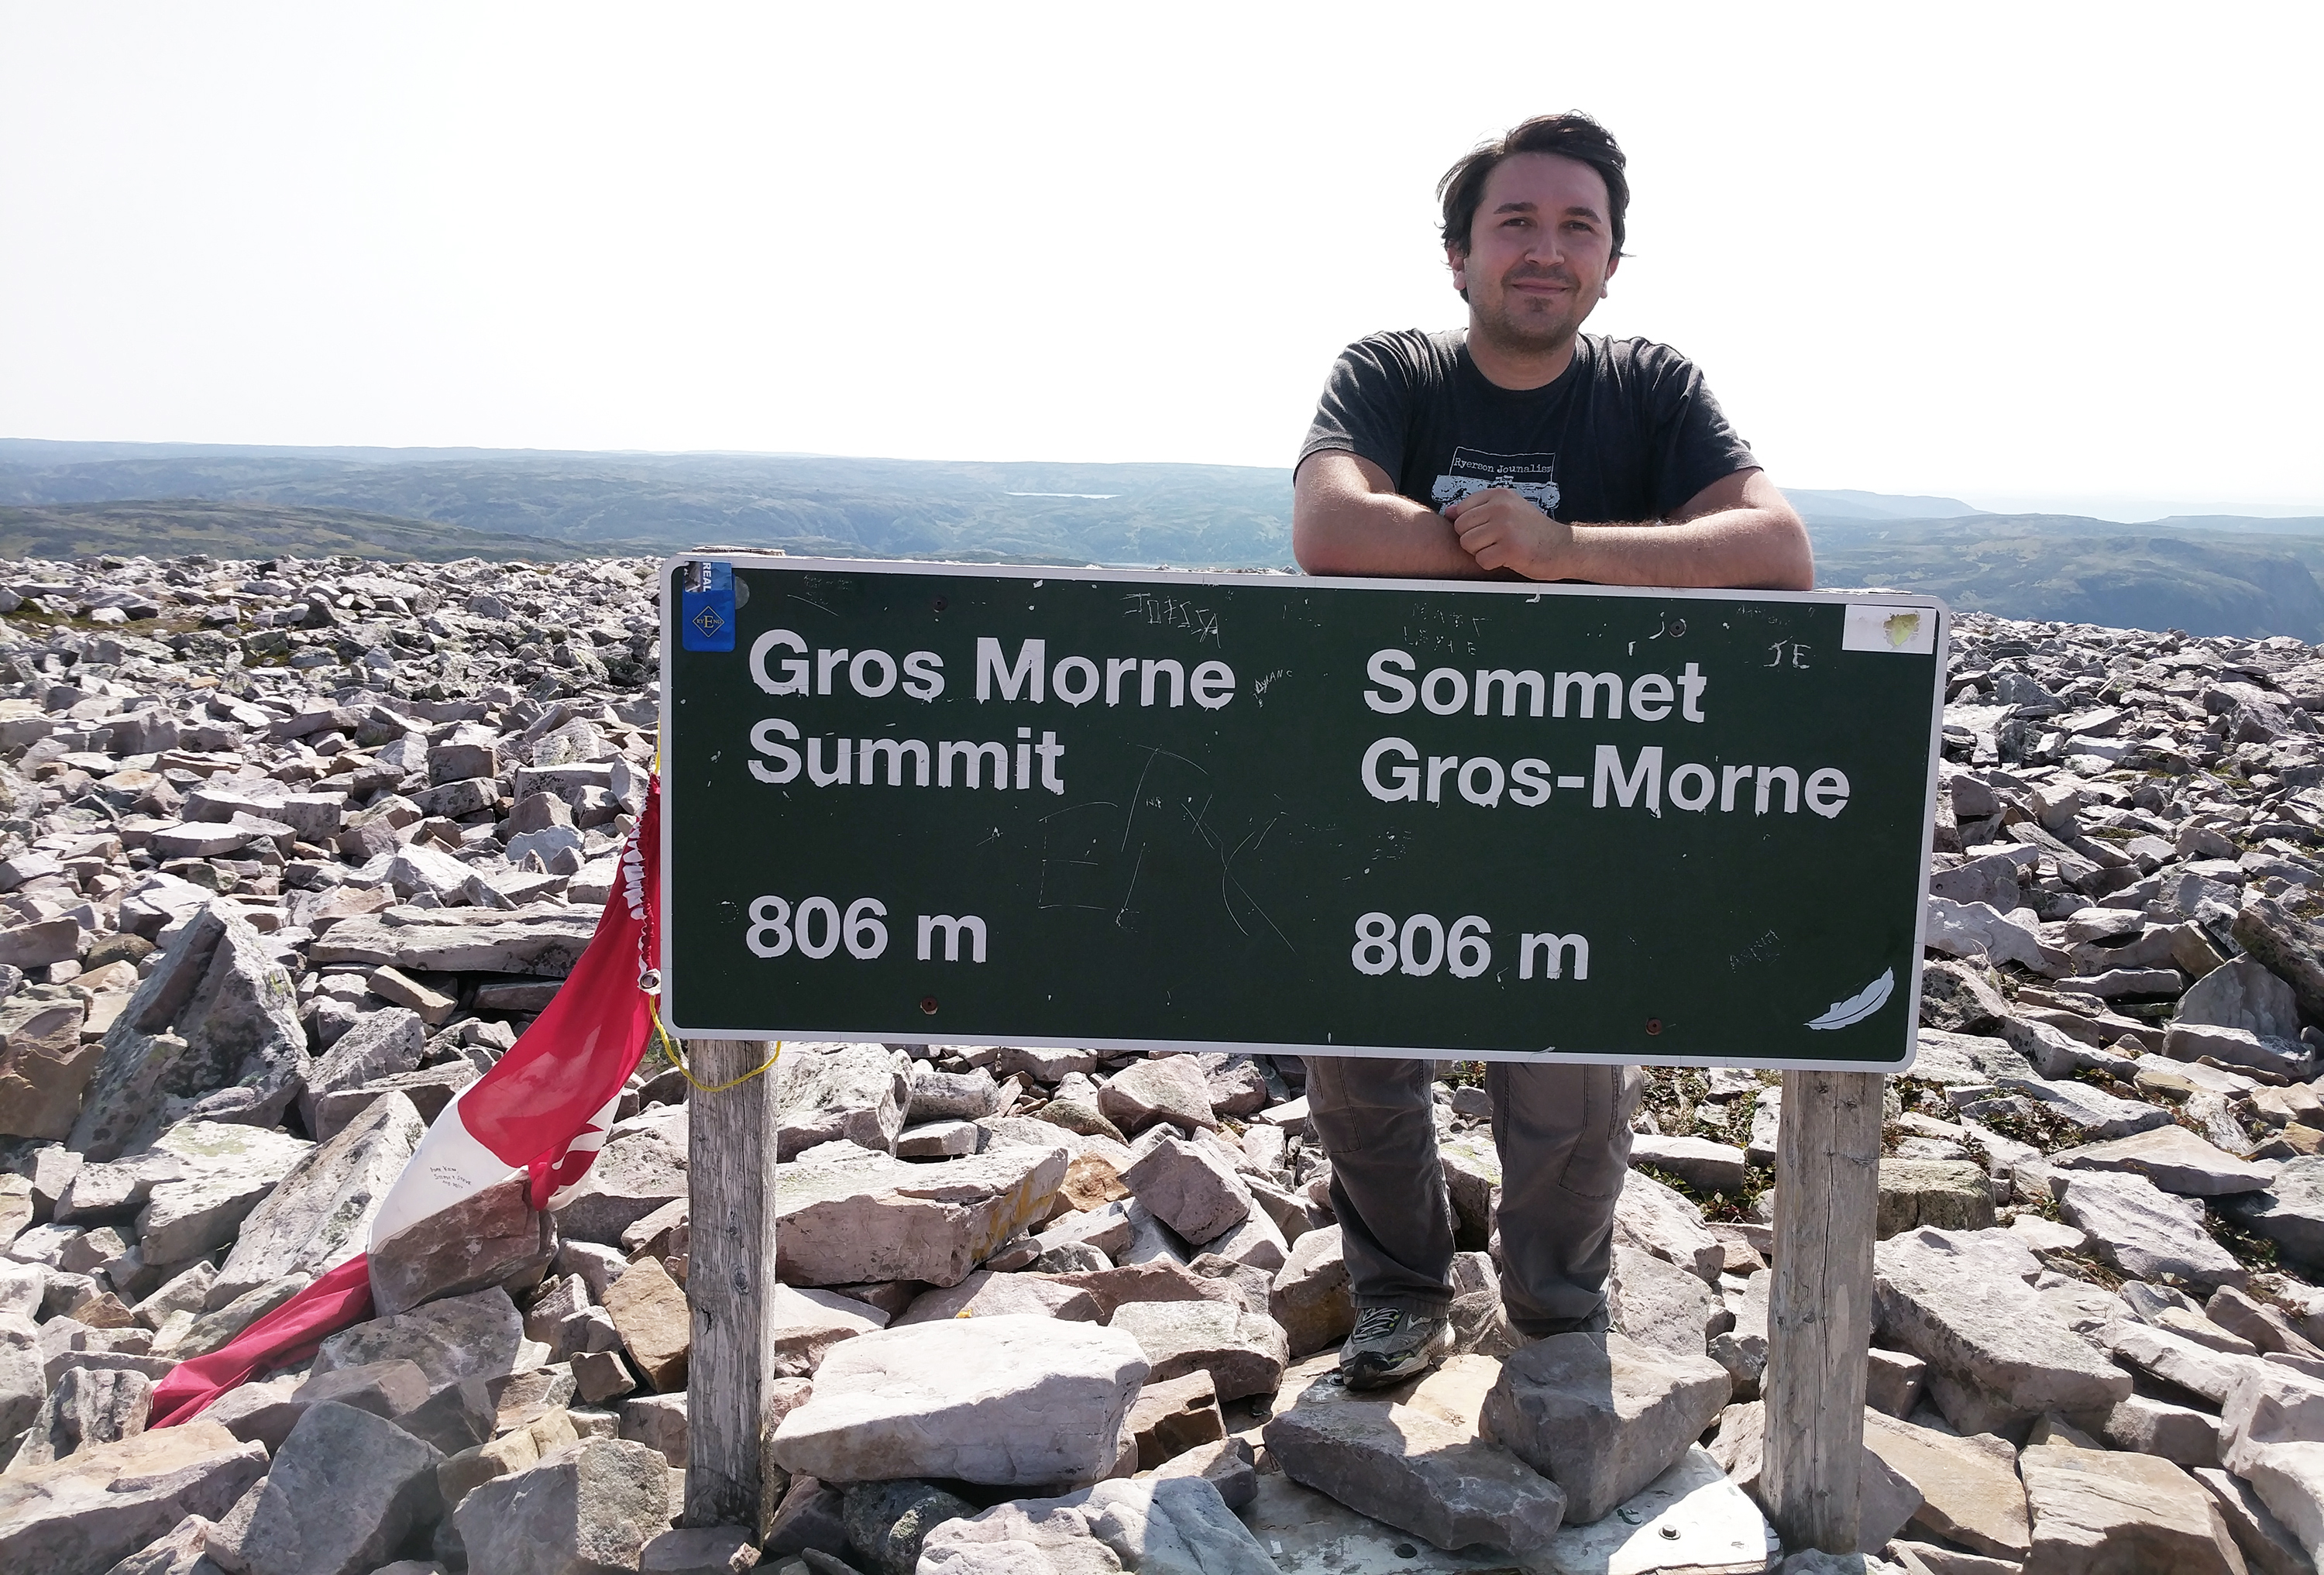 Steve Silva at the summit of Gros Morne Mountain, pictured on Aug. 31, 2017. (Steve Silva)